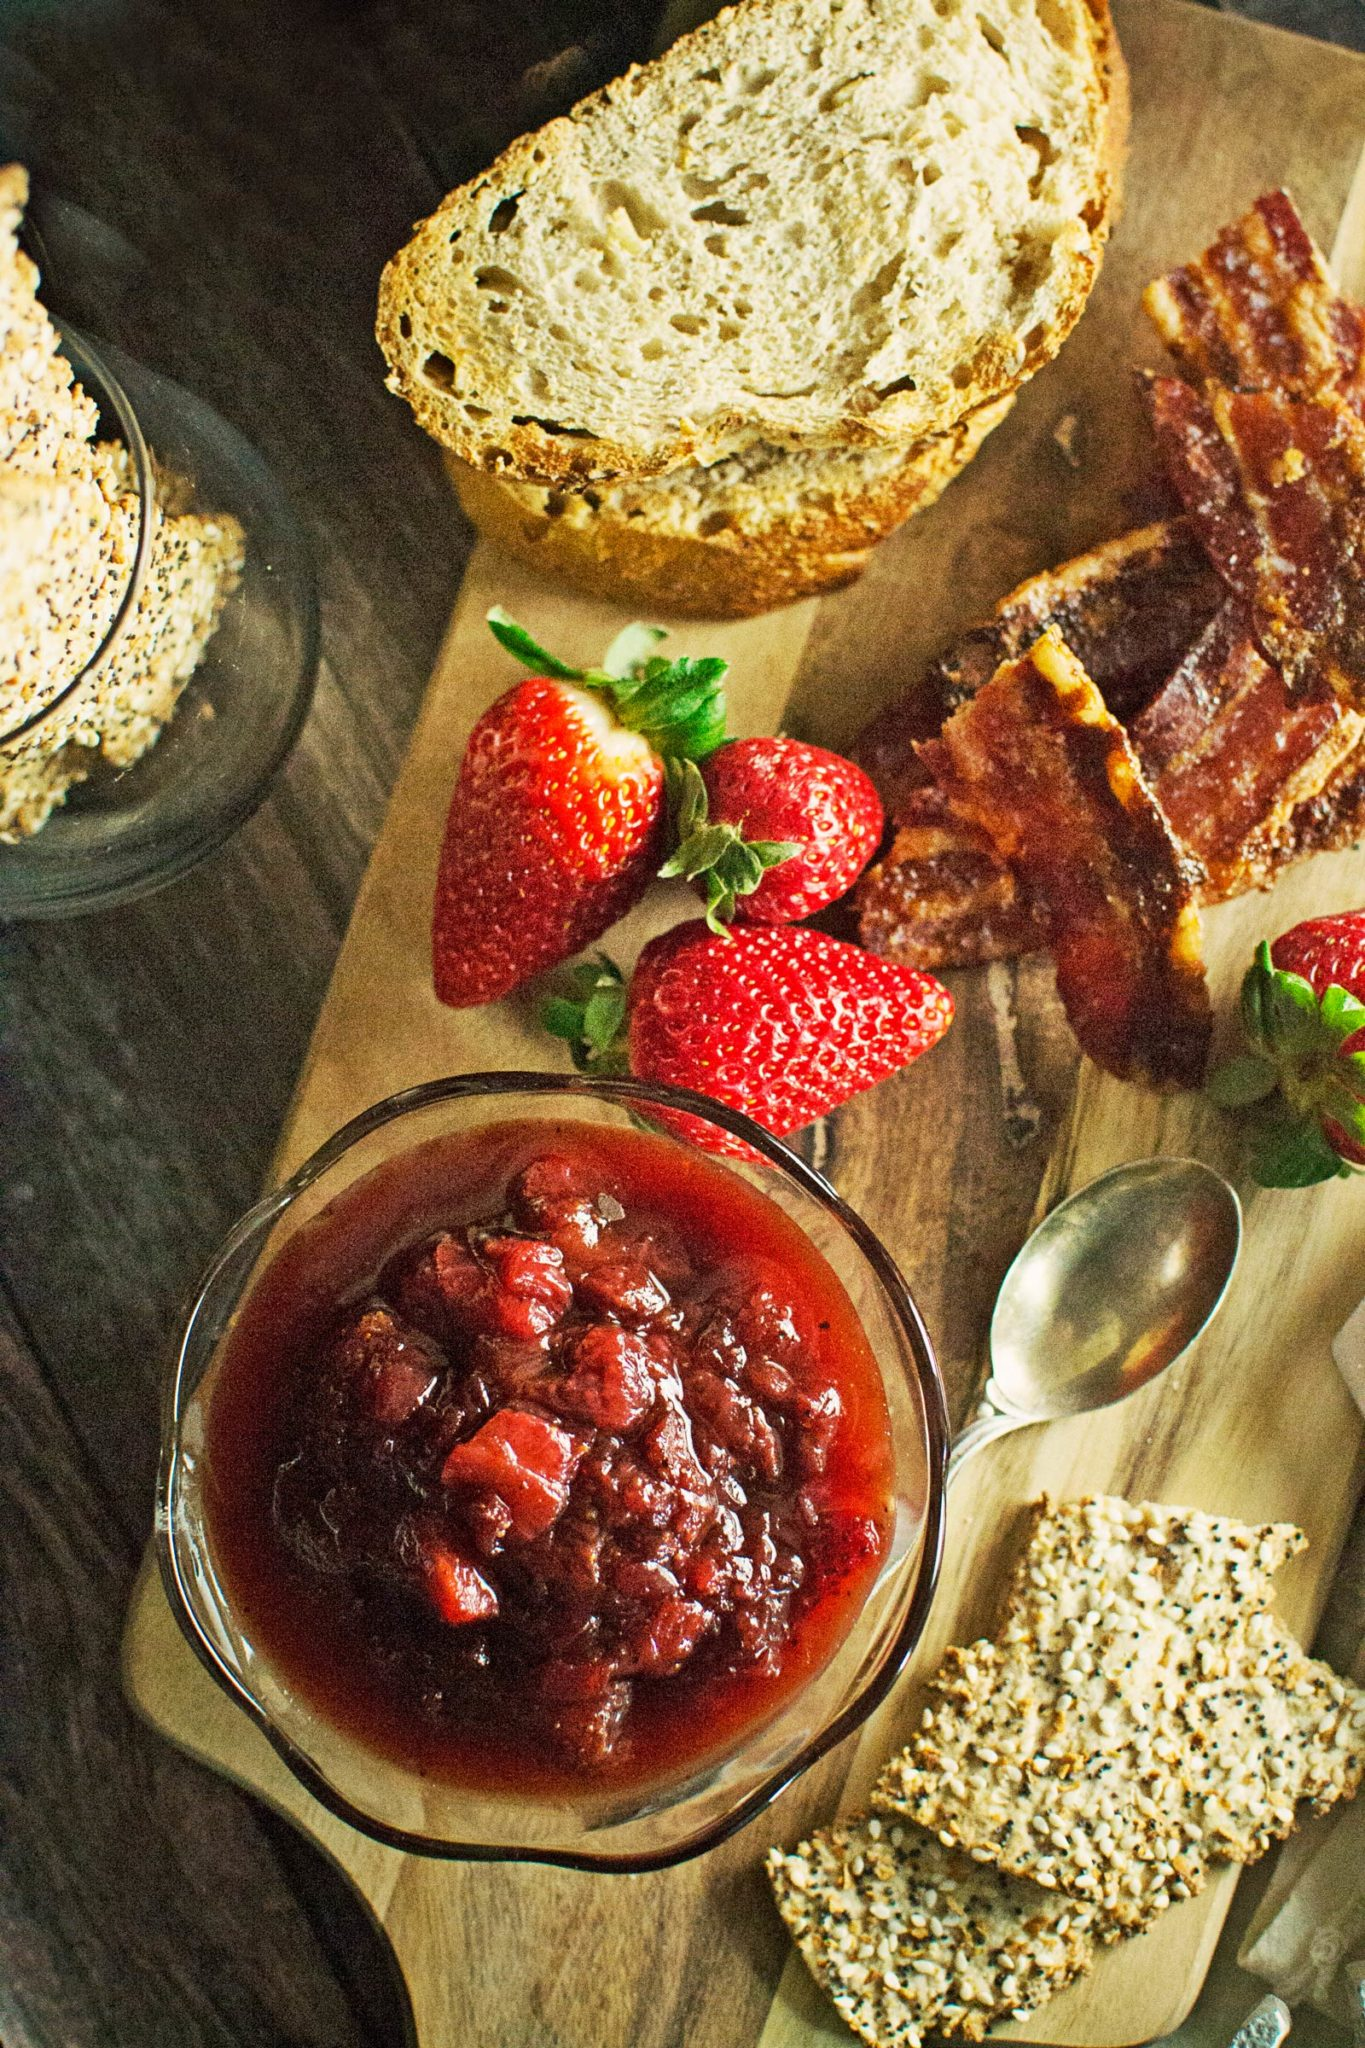 Strawberry Balsamic Jam - Cheeseboard for Two #tutorial